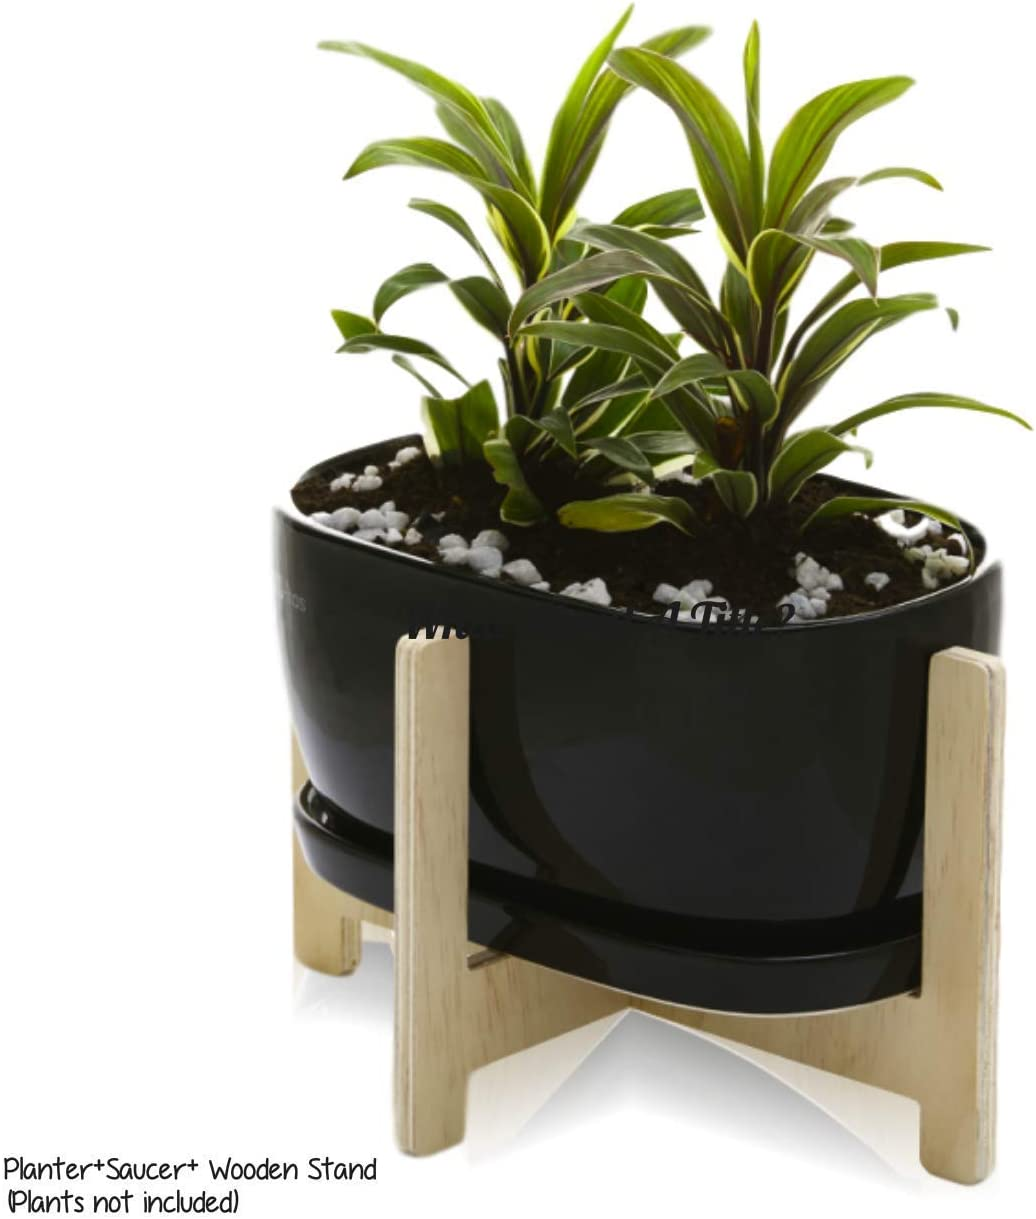 KOZitas Black 8.5 inch Oval Modern Minimalist Ceramic Succulent Plant Pots Indoor with Mid Century Plant Holder Stand Set for Flowers Herbs, Terrarium Cactus and Kitchen Decor. Gift Ready